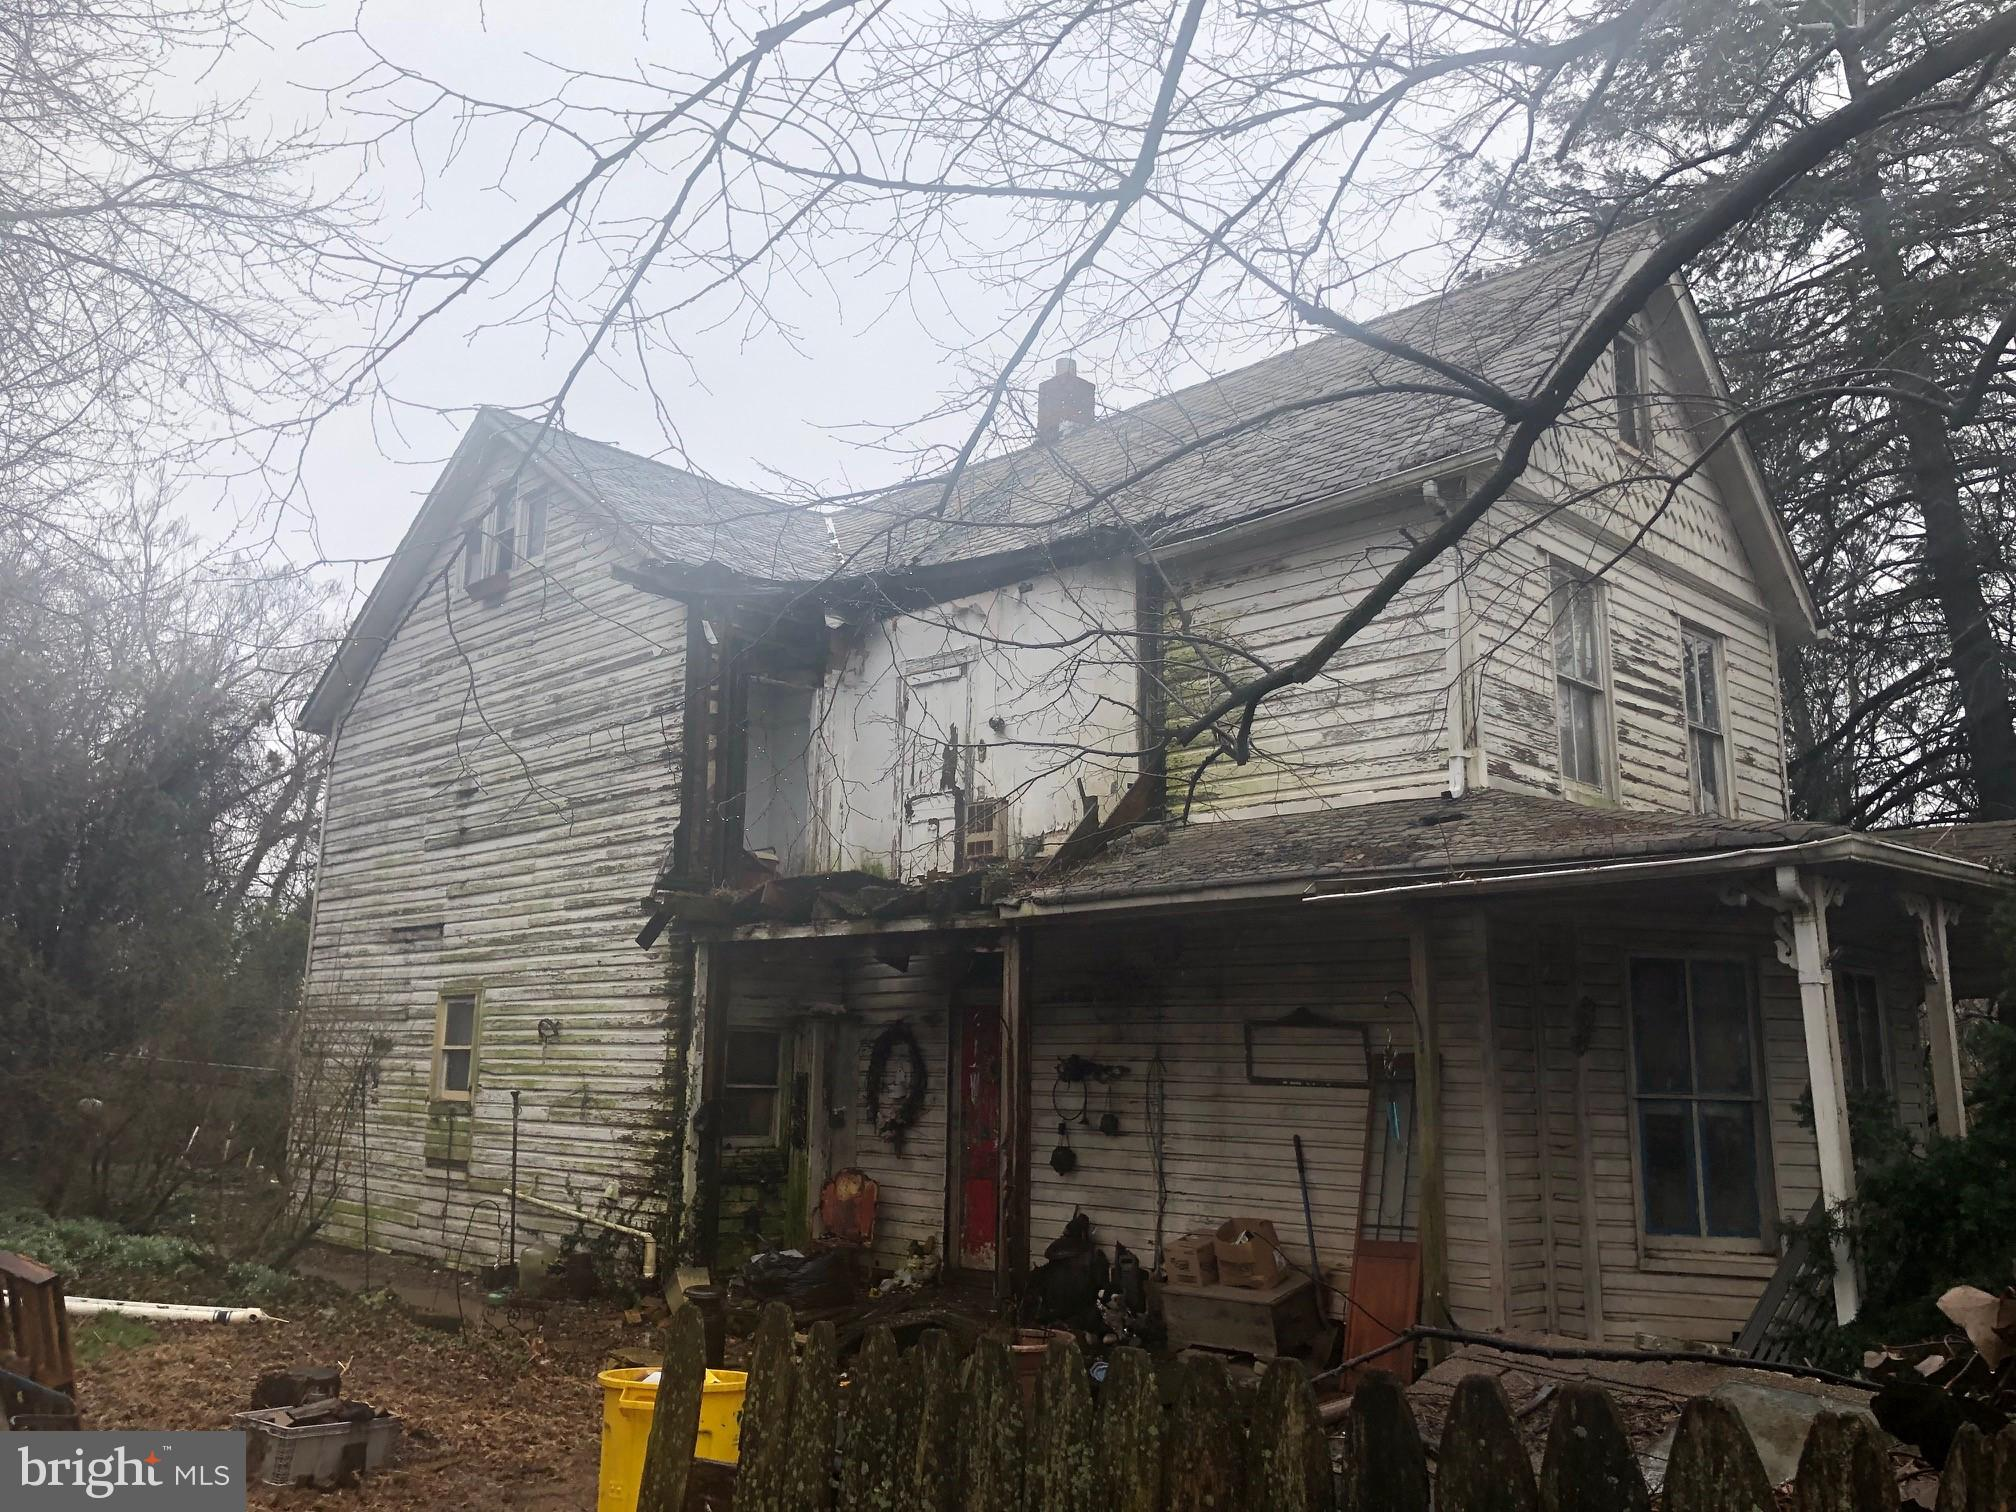 AS IS CONDITION. Investor alert! Home is your blank canvas, in need of full renovation. Easy access to all major highways, commute with ease to Baltimore or DC. Must sign hold harmless before entering property. Contact alternate agent for more details!